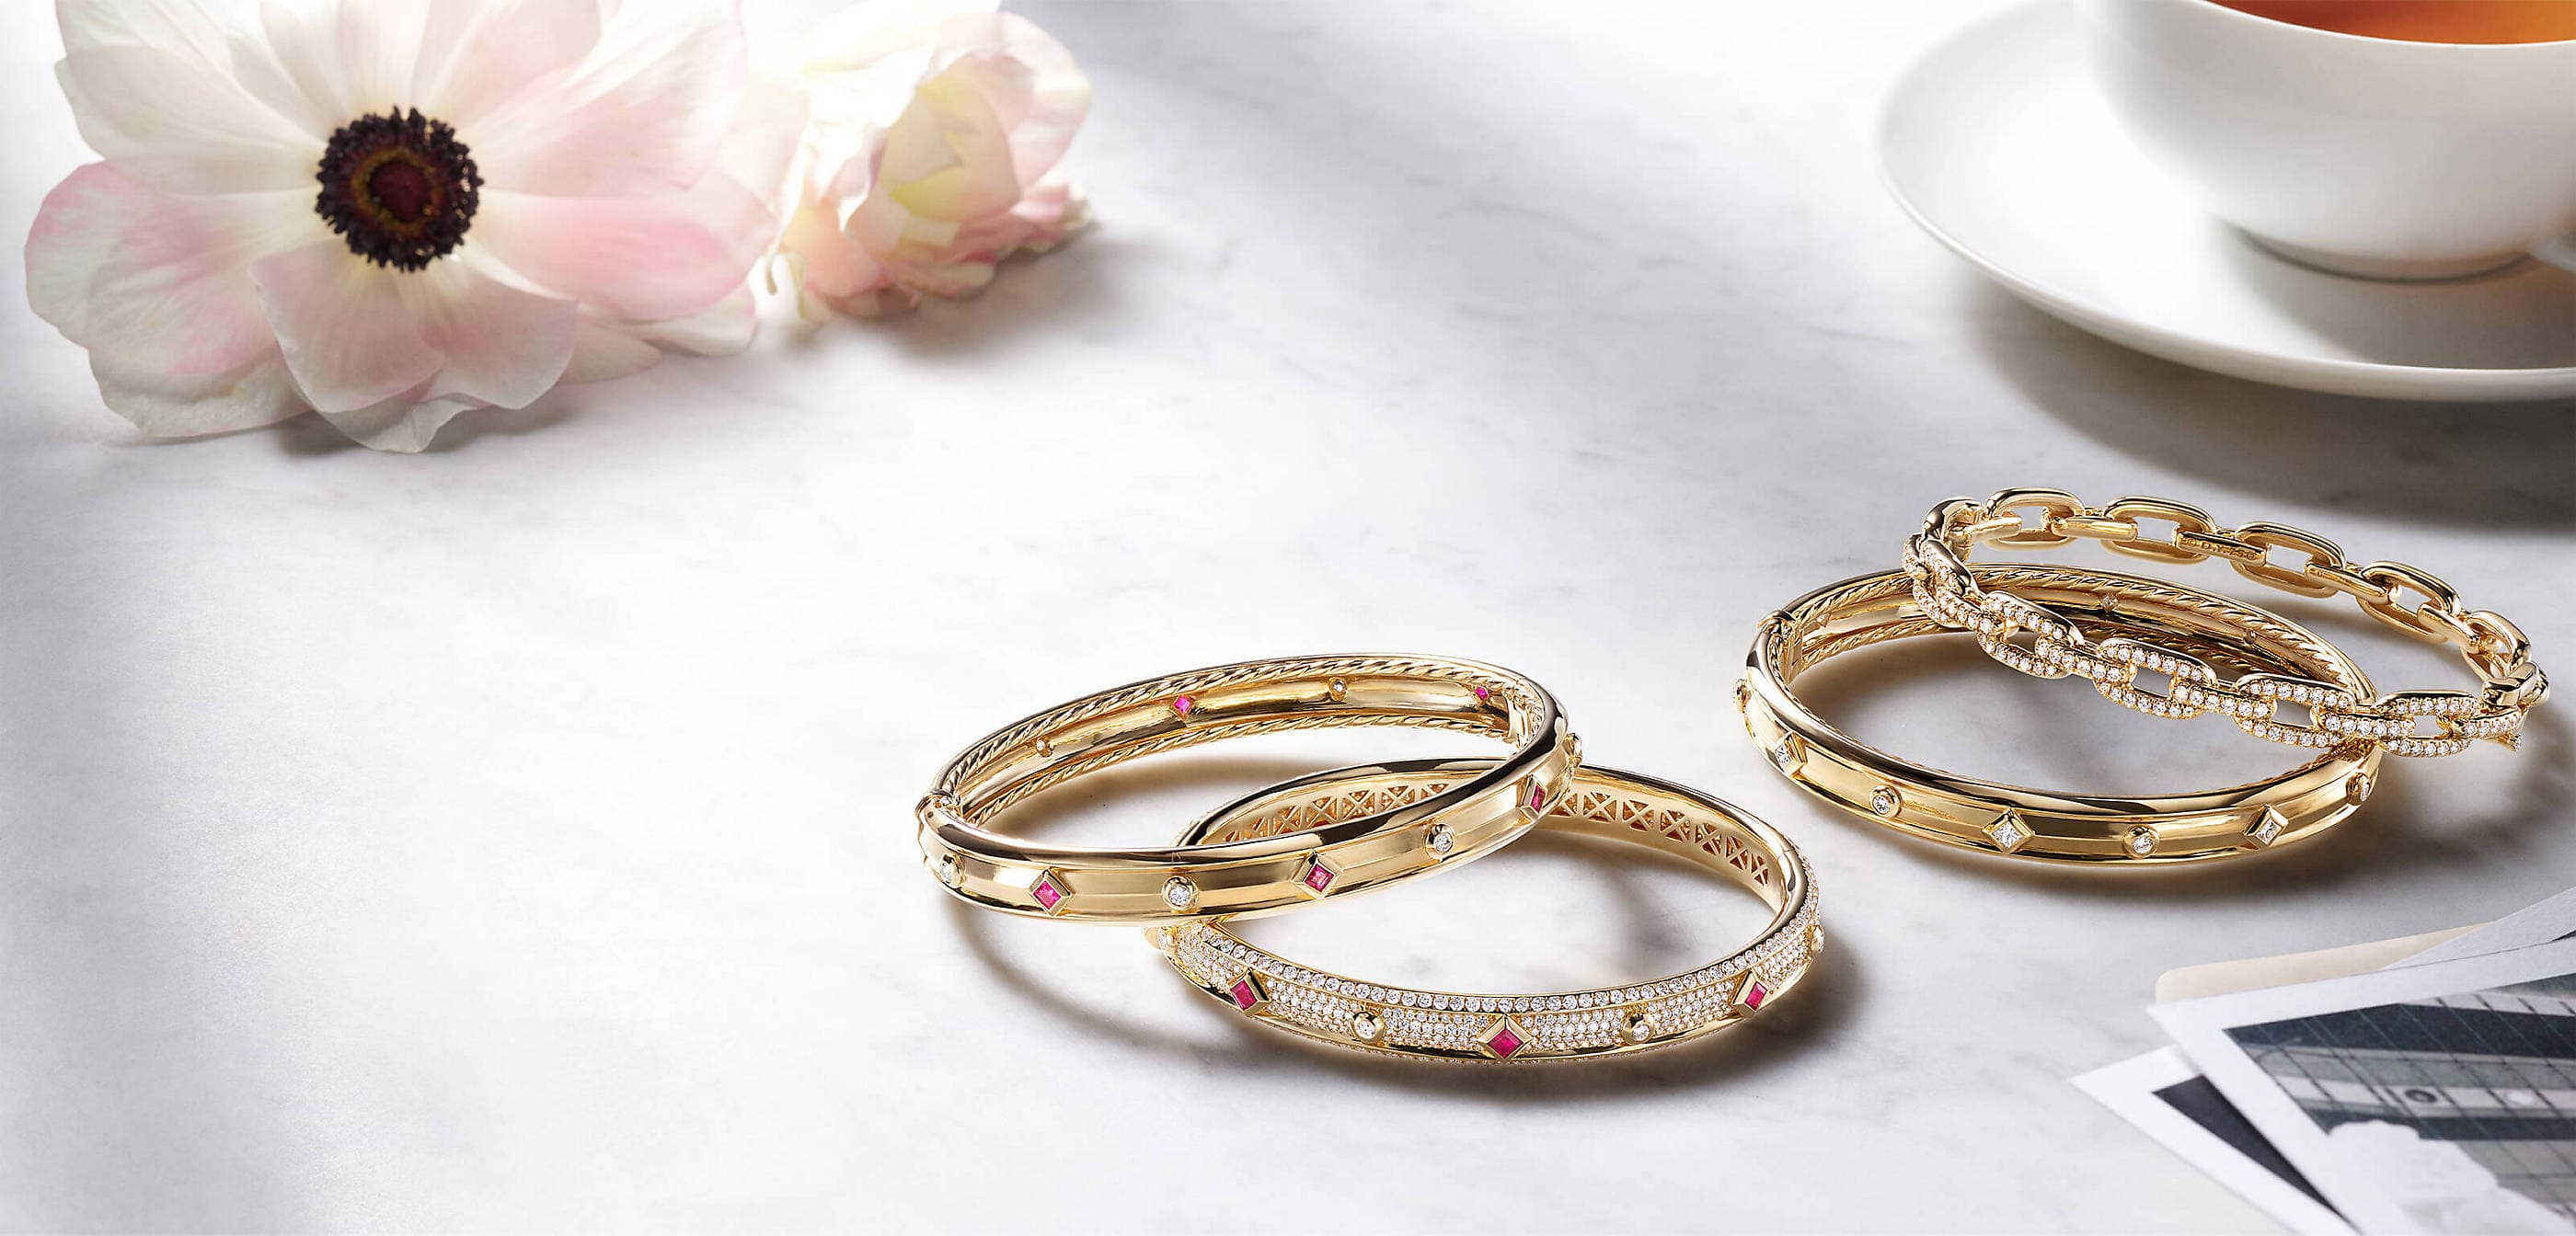 A color photo shows four David Yurman women's bracelets from the Modern Renaissance and Stax collections scattered on a grey marble surface nearby a white cup and saucer, black-and-white photos and a pink-and-white flower. The jewelry is crafted from 18K yellow gold with diamond accents and with or without ruby accents.